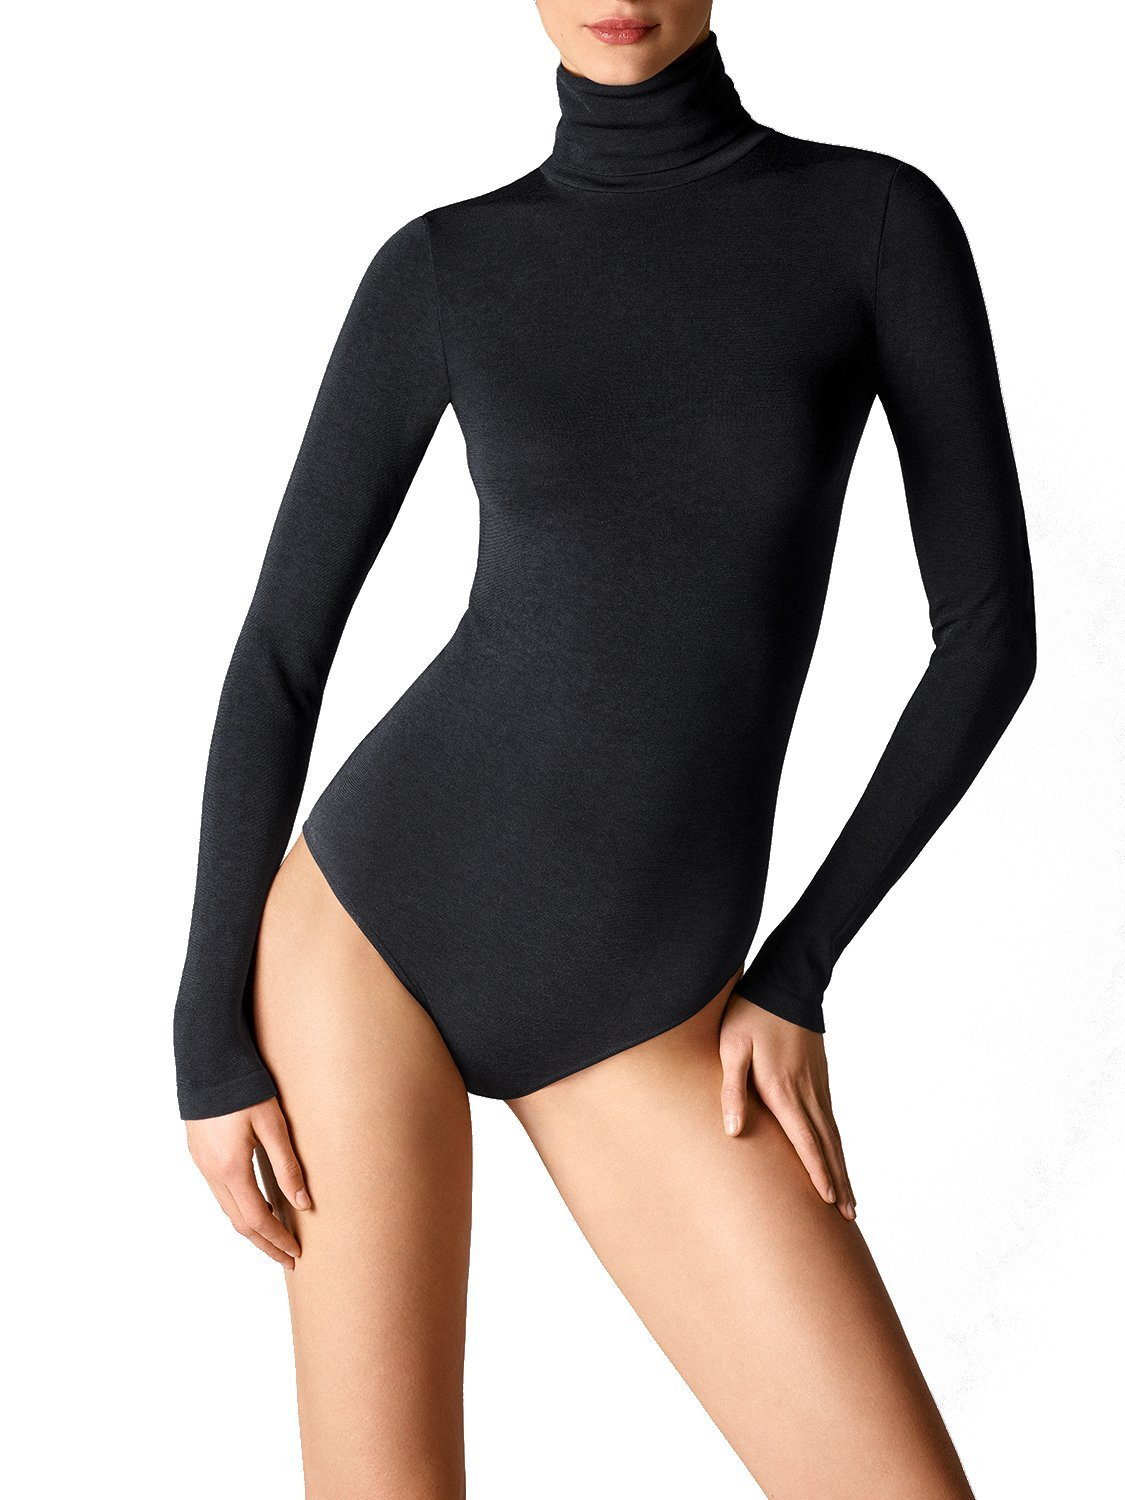 Wolford Women's Colorado Bodysuit Black Small by Wolford